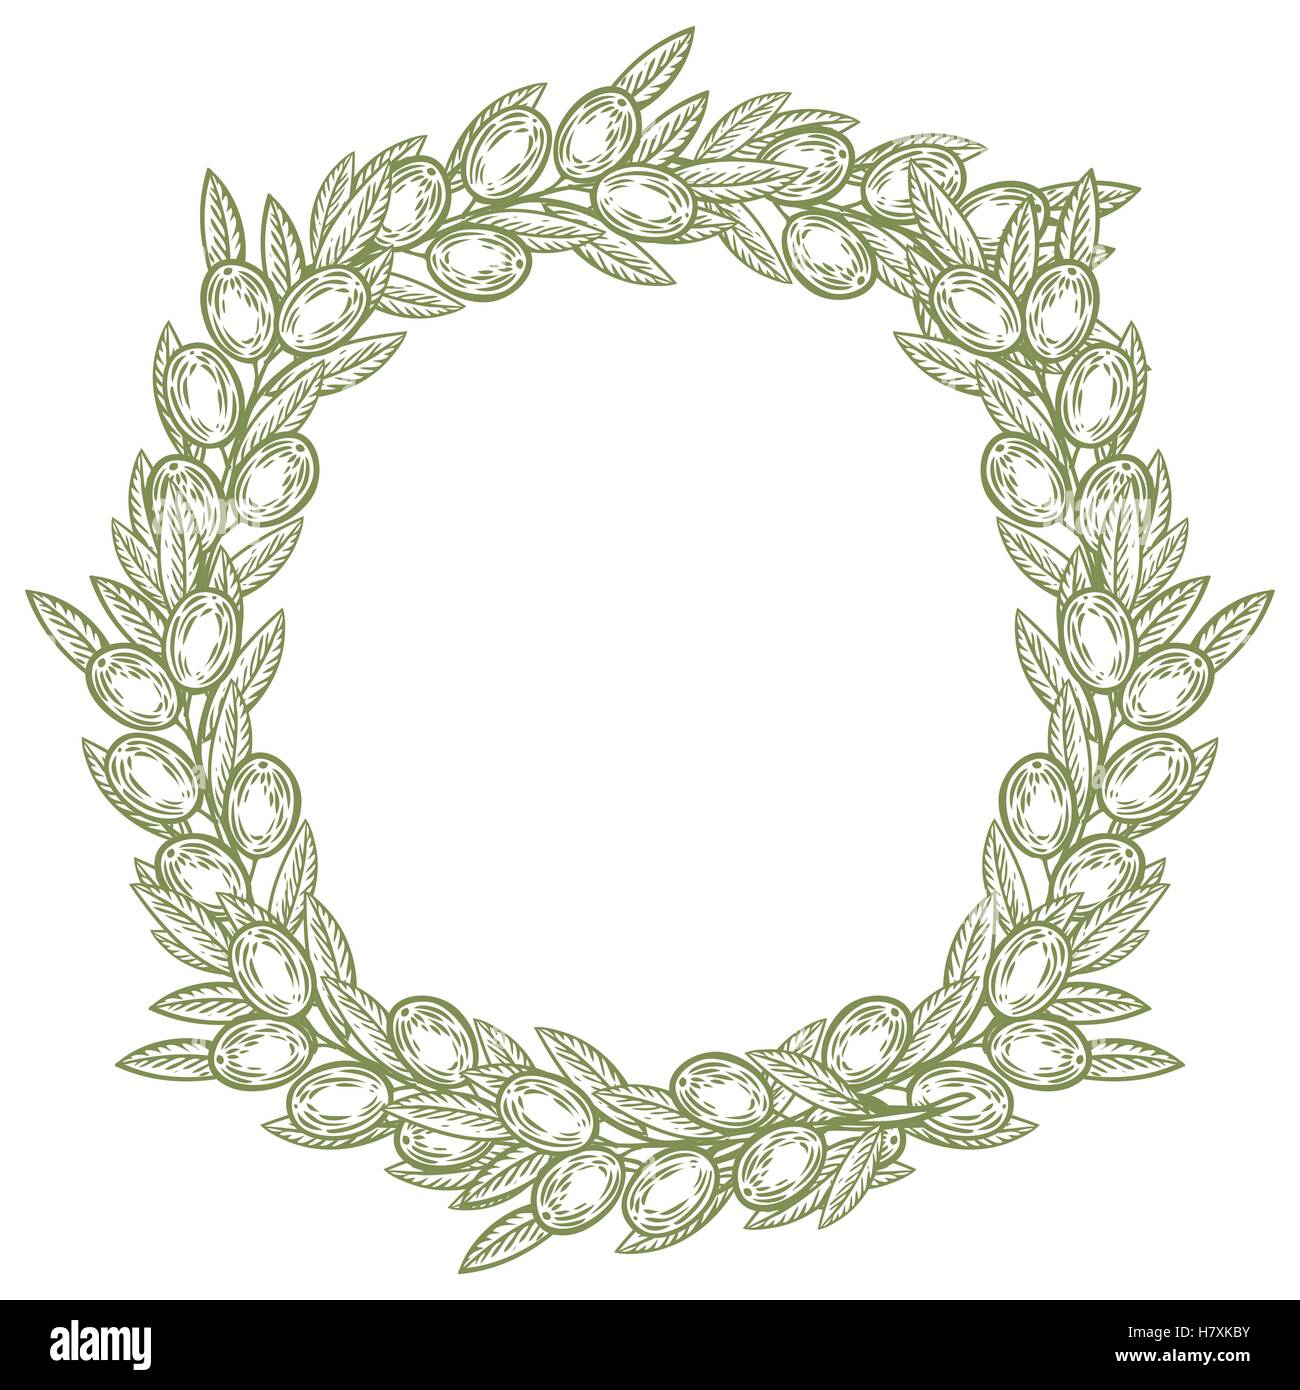 Olive laurel wreath and branch hand drawn vector illustration. Leave and berry round frame isolated on white background. - Stock Image